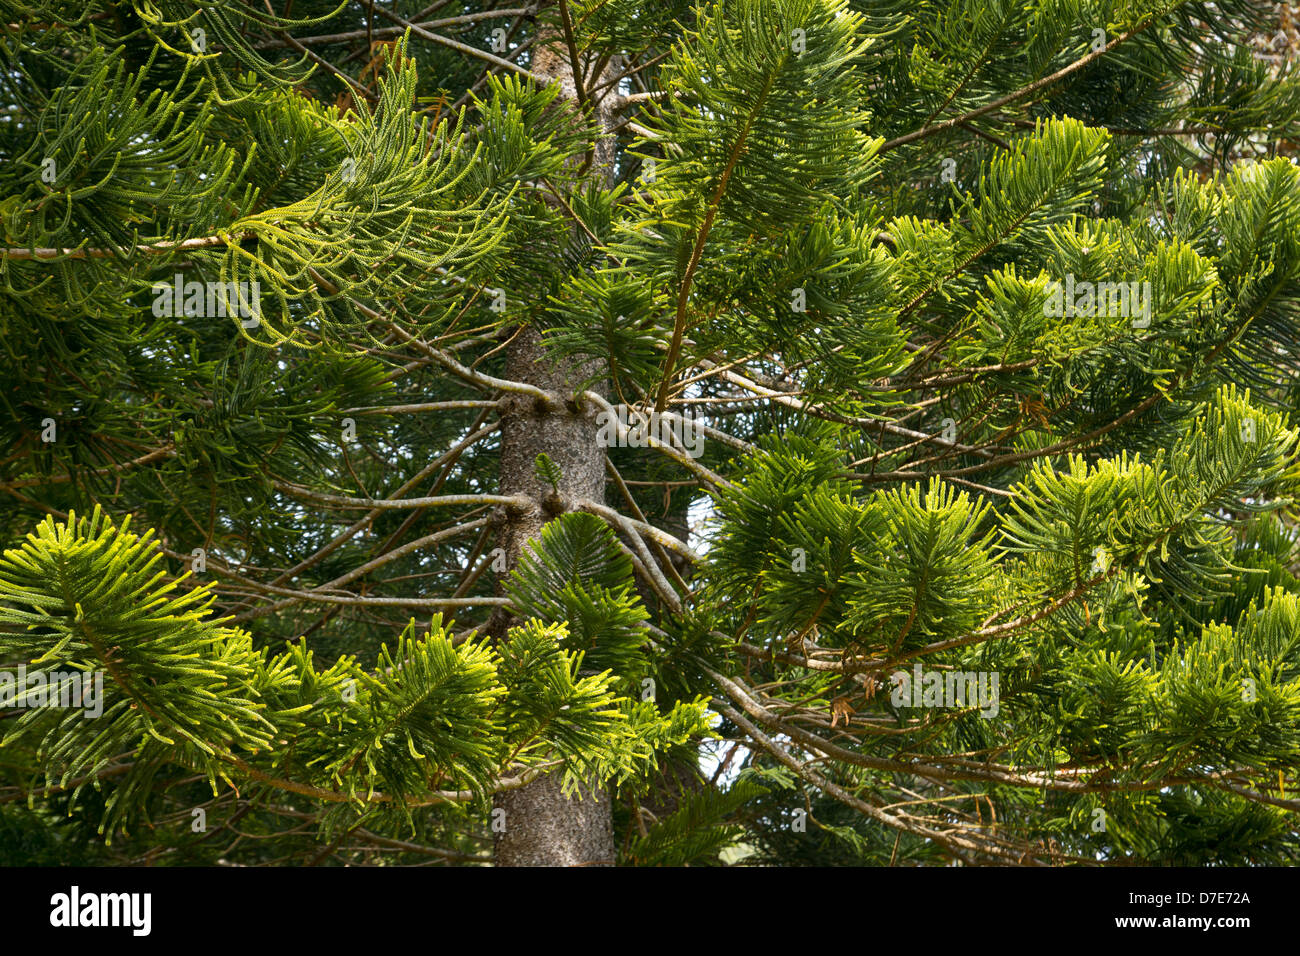 New Caledonia Pine Stock Photos Amp New Caledonia Pine Stock